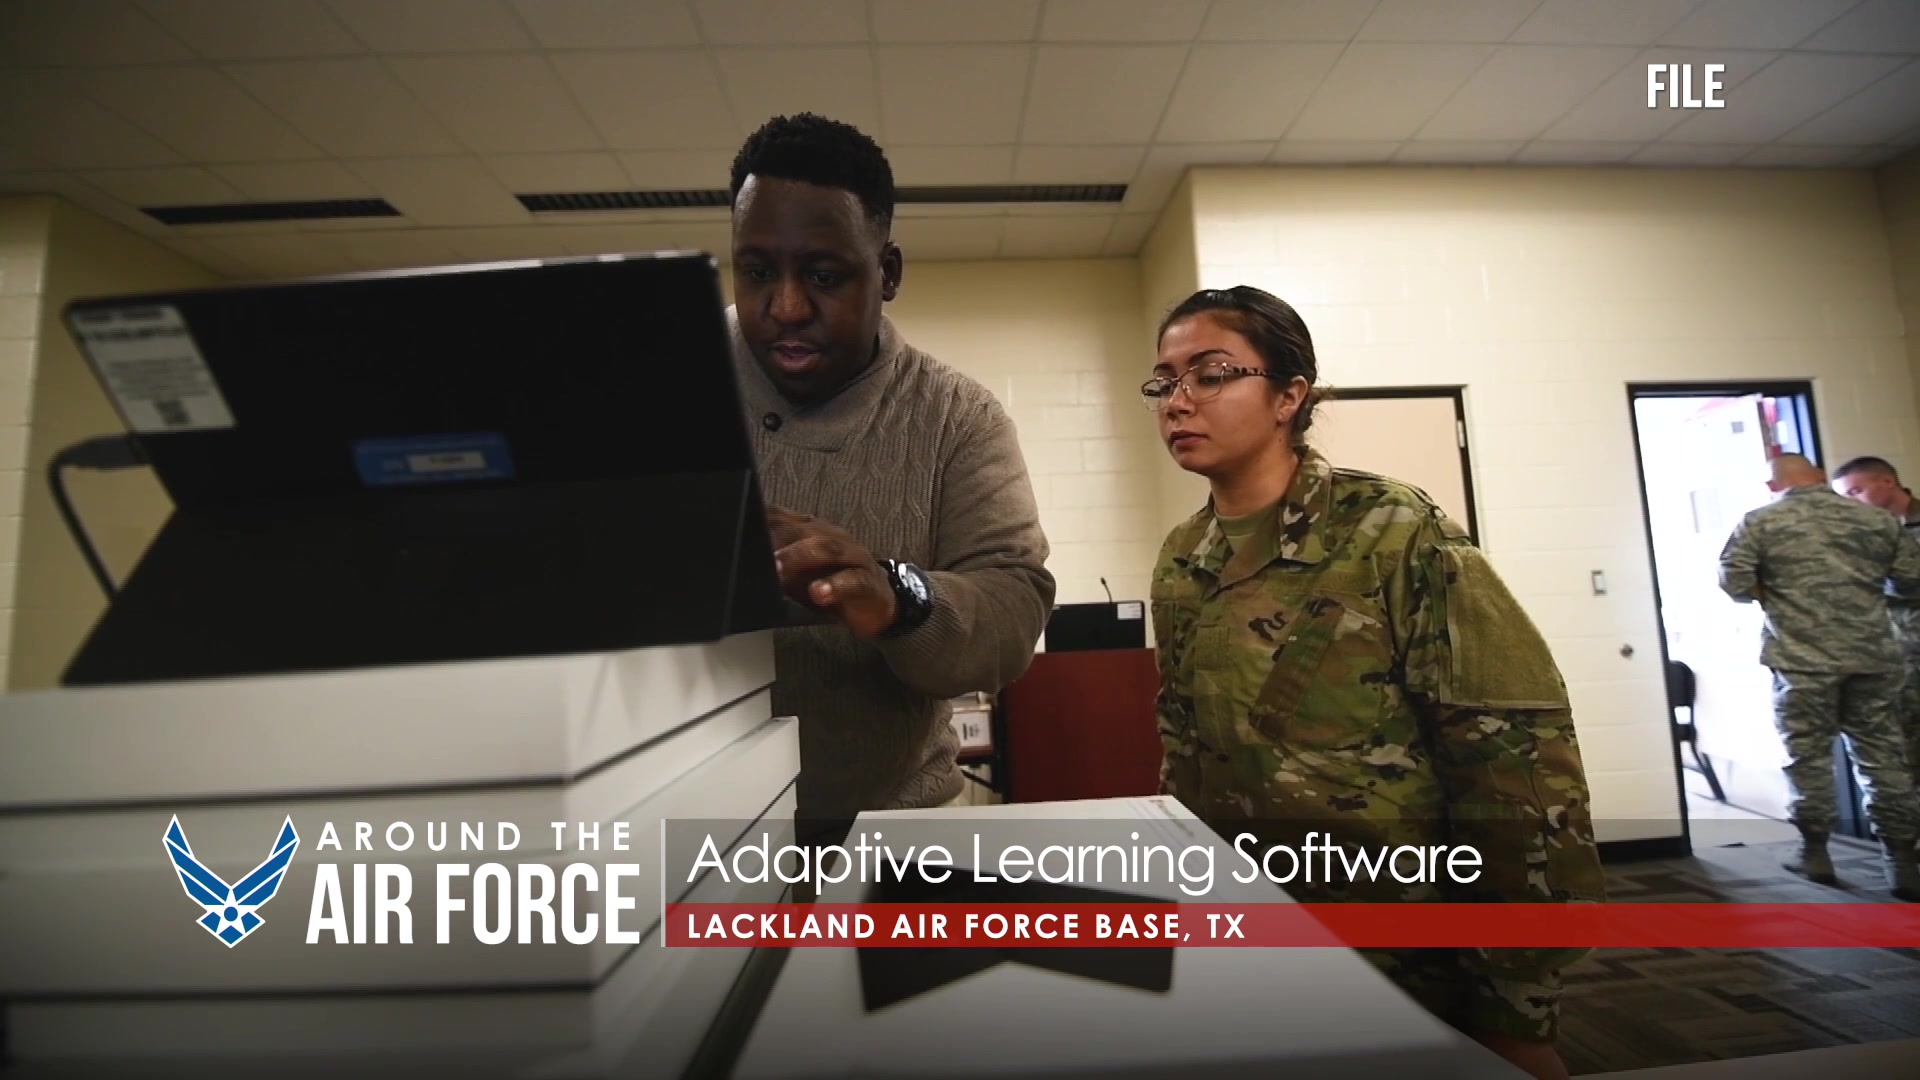 Today's look Around the Air Force features the this year's 6 Spark Tank winners, a transition from textbooks to tablets in Basic Military Training, and some information on Air Force Connect.